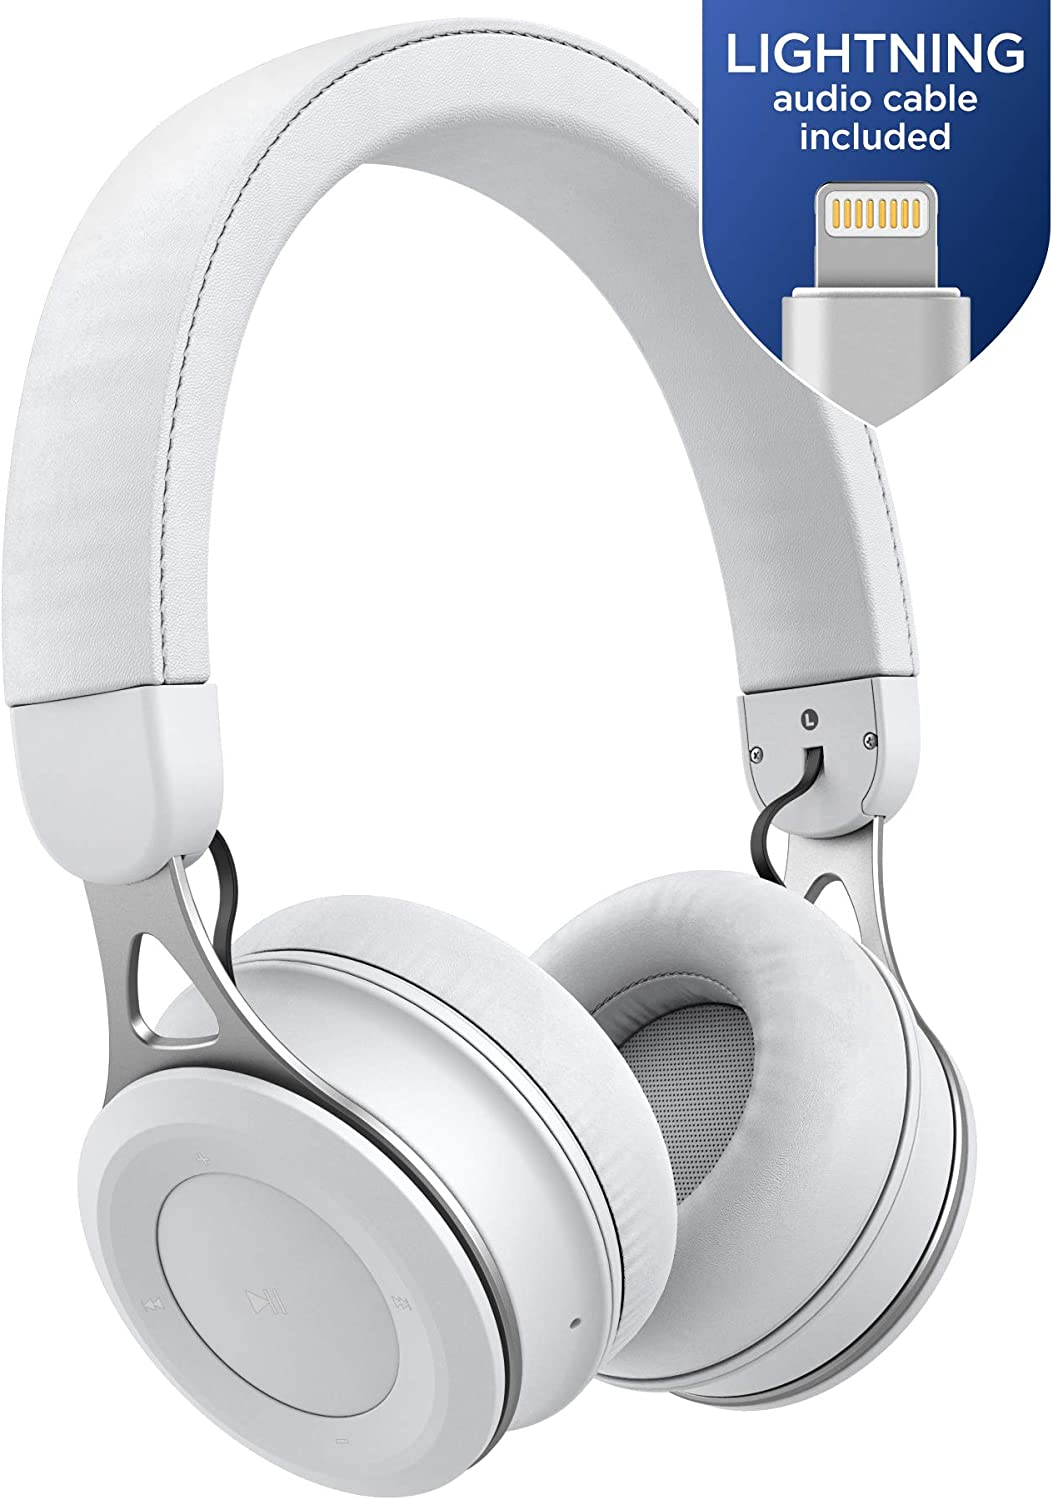 Thore Bluetooth iPhone Headphones with Lightning Connector - Lightweight Adjustable On Ear Wireless Earphones (MFI Certified) for Apple iPhone X, XR, XS Max, 11 Pro (C150 White)